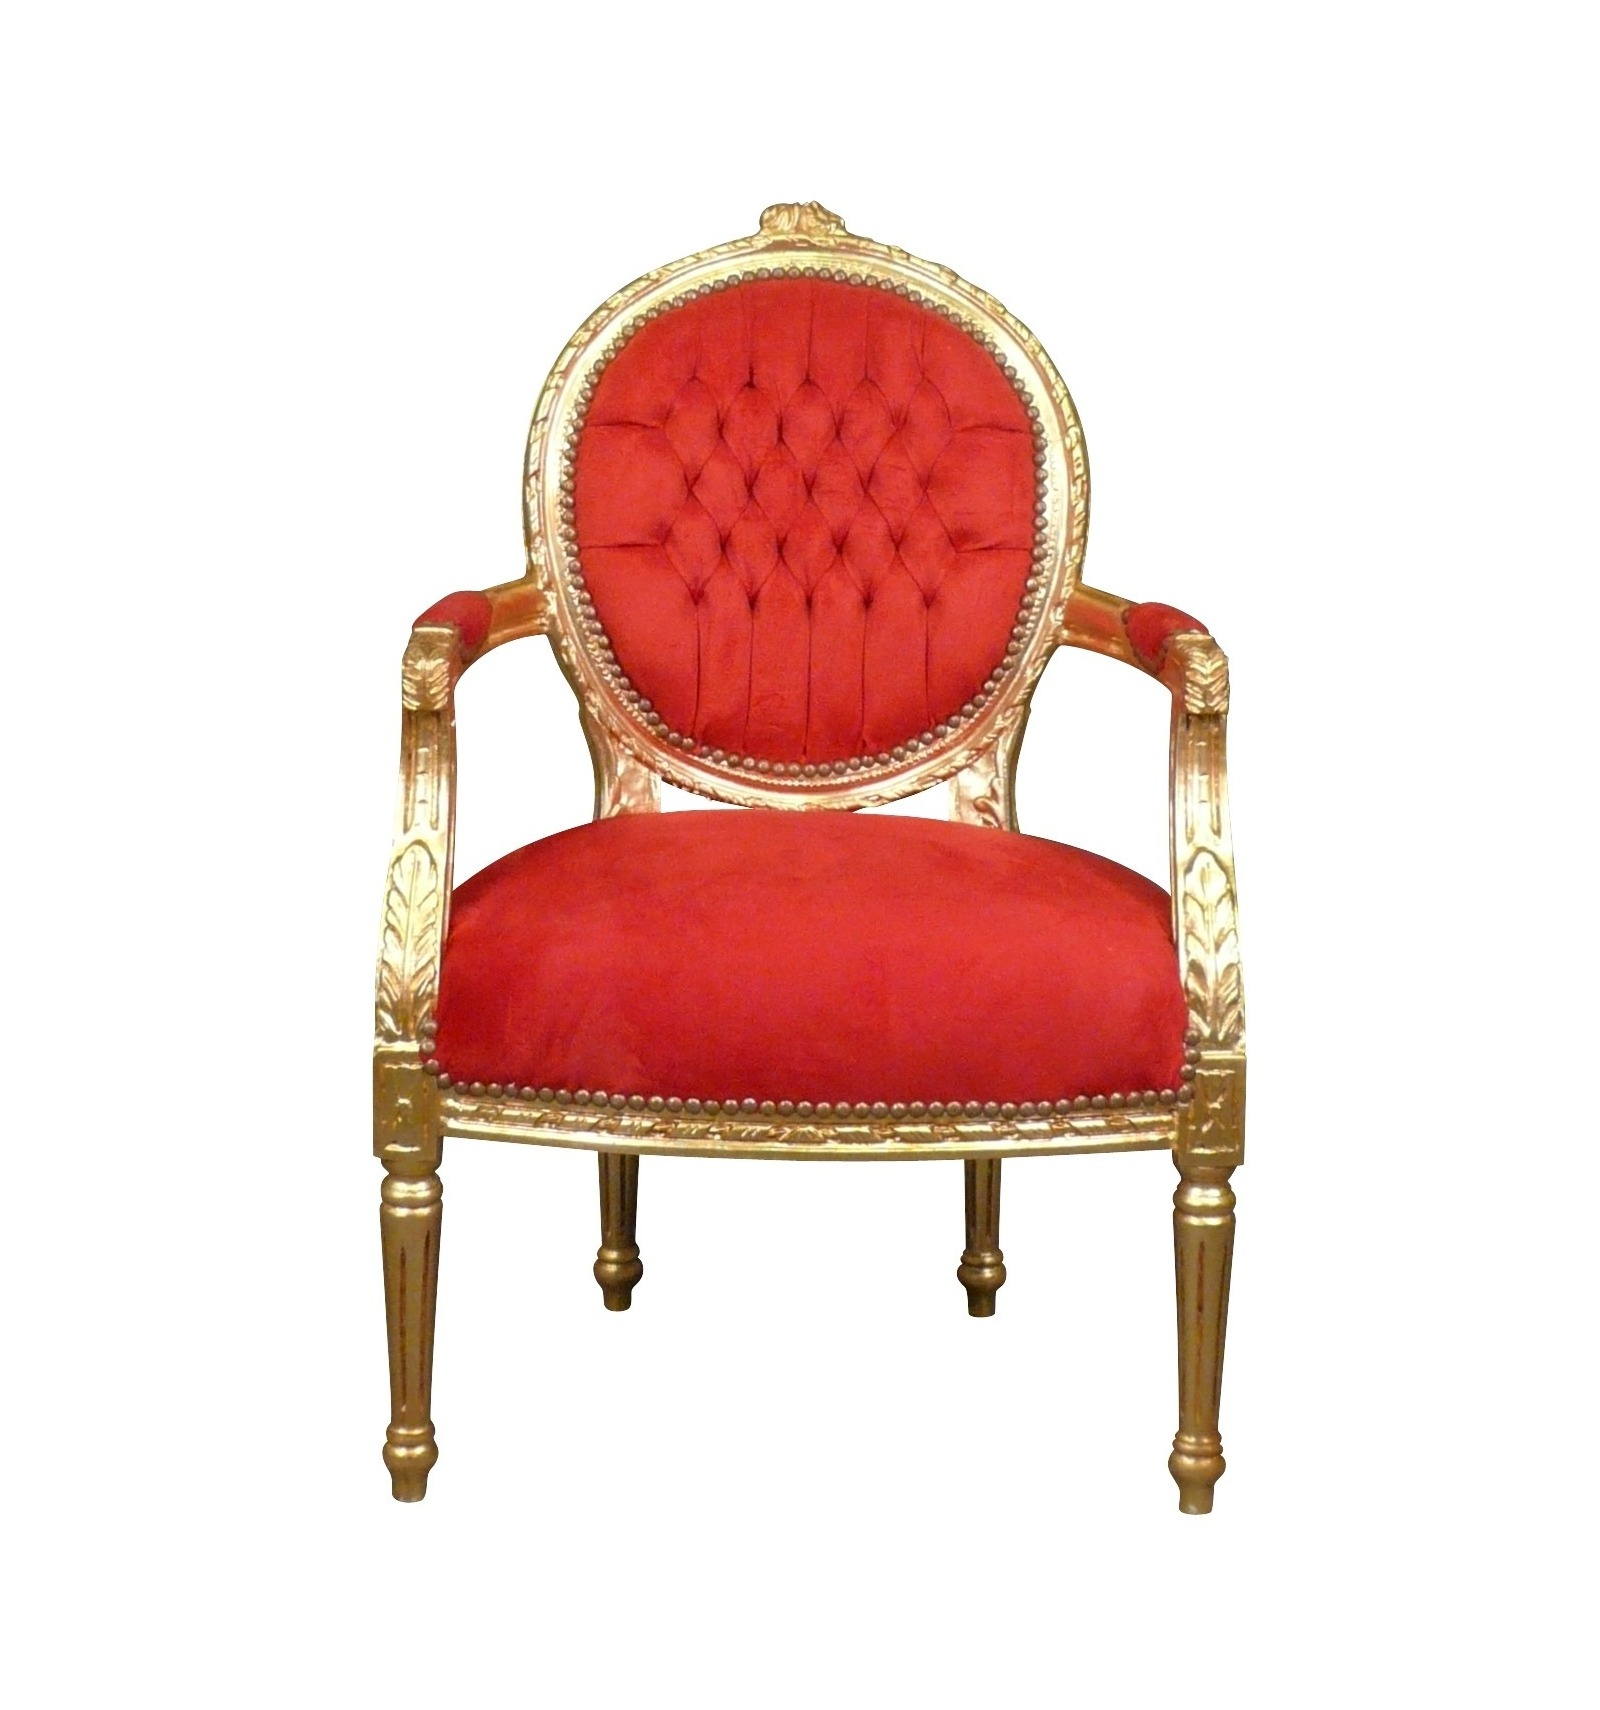 fauteuil louis xvi m daillon chaise baroque. Black Bedroom Furniture Sets. Home Design Ideas